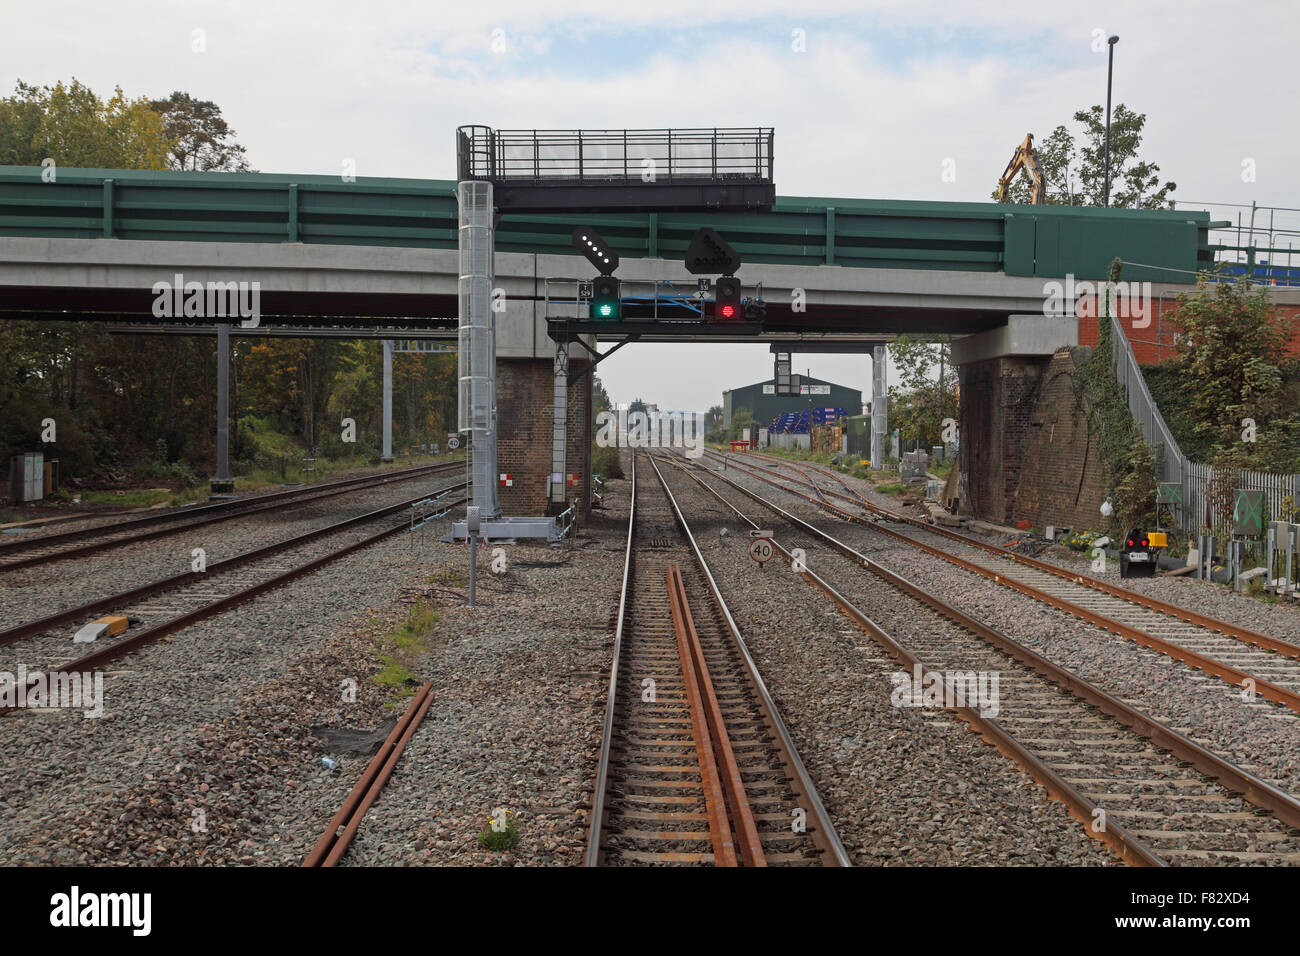 On the relief line stood facing a green signal with a lit junction indicator in front of a newly constructed road - Stock Image